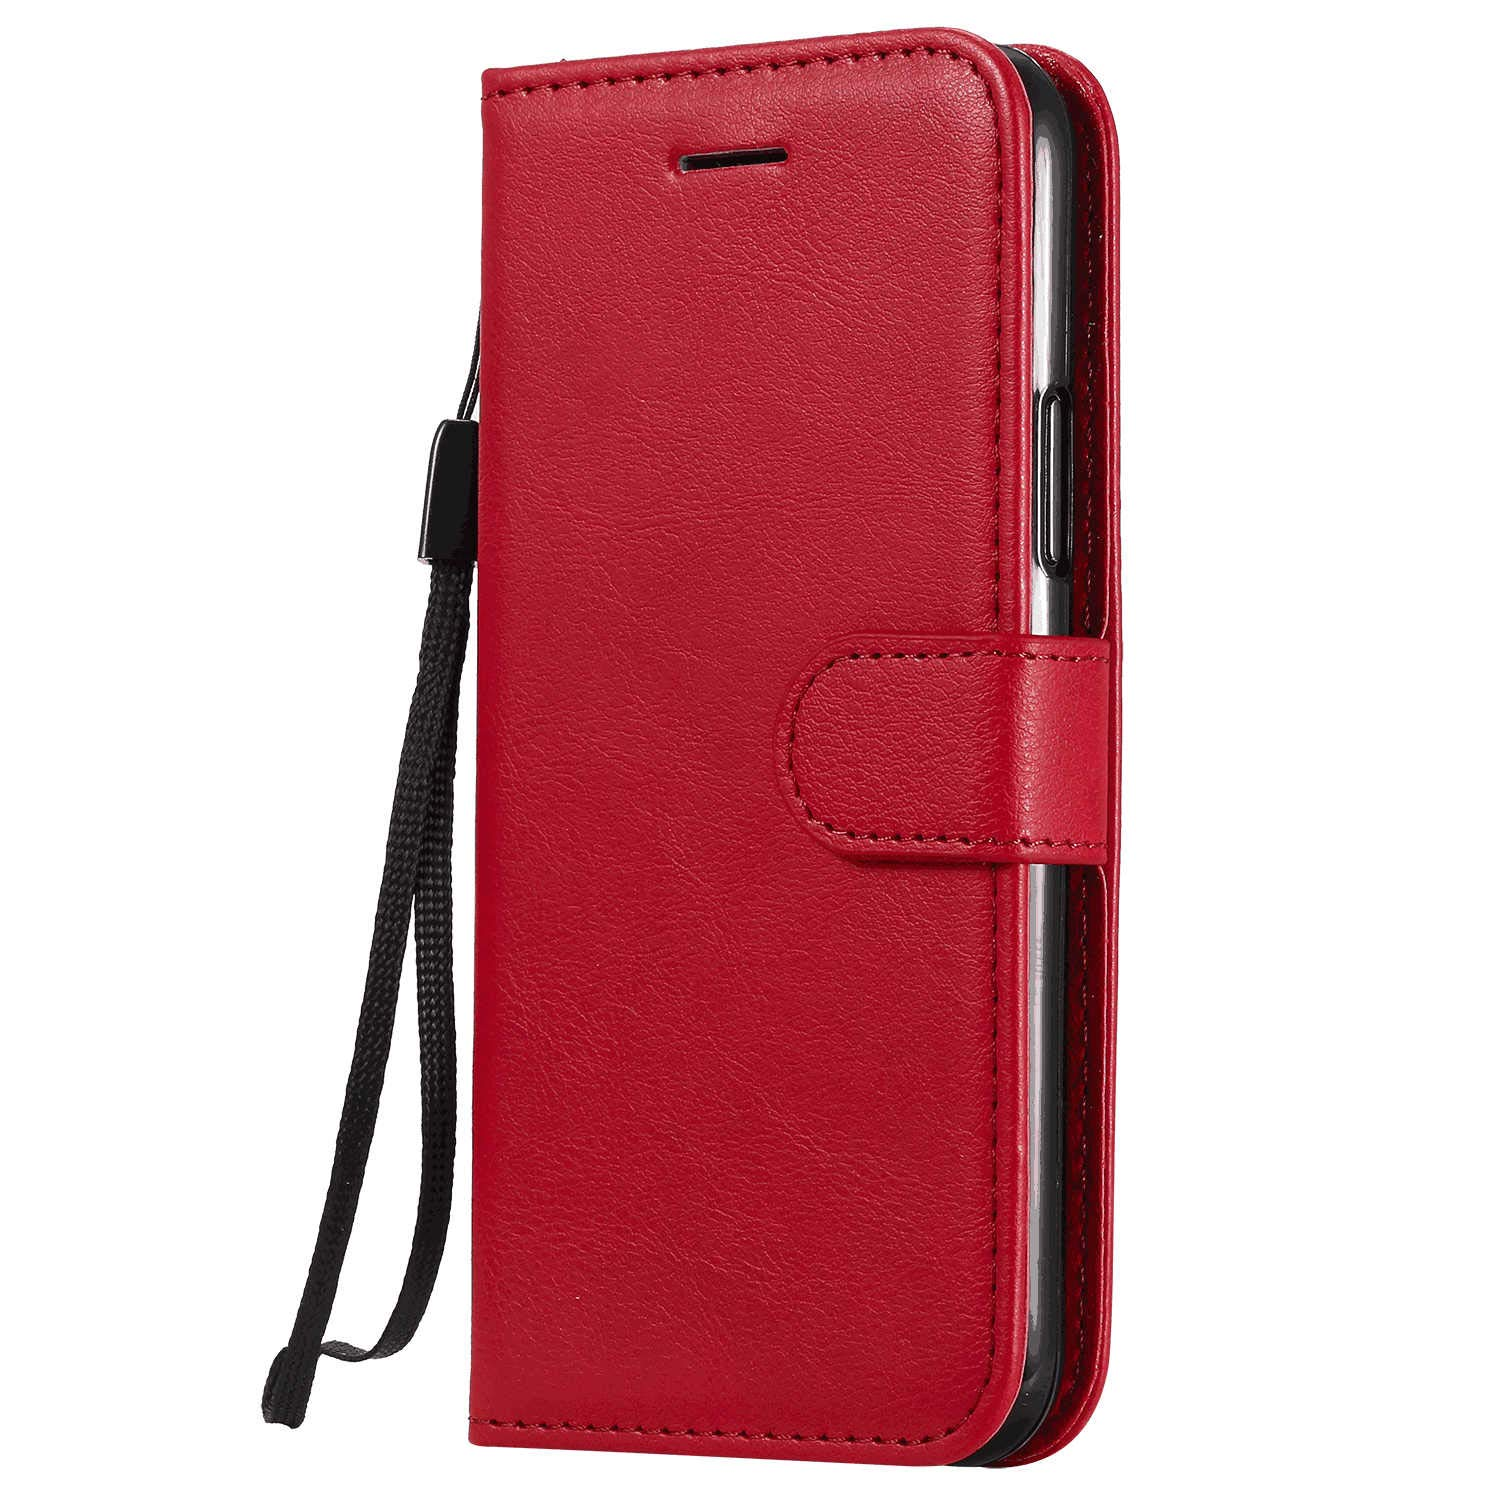 Leather Cover Compatible with iPhone 11 Pro Max, red Wallet Case for iPhone 11 Pro Max